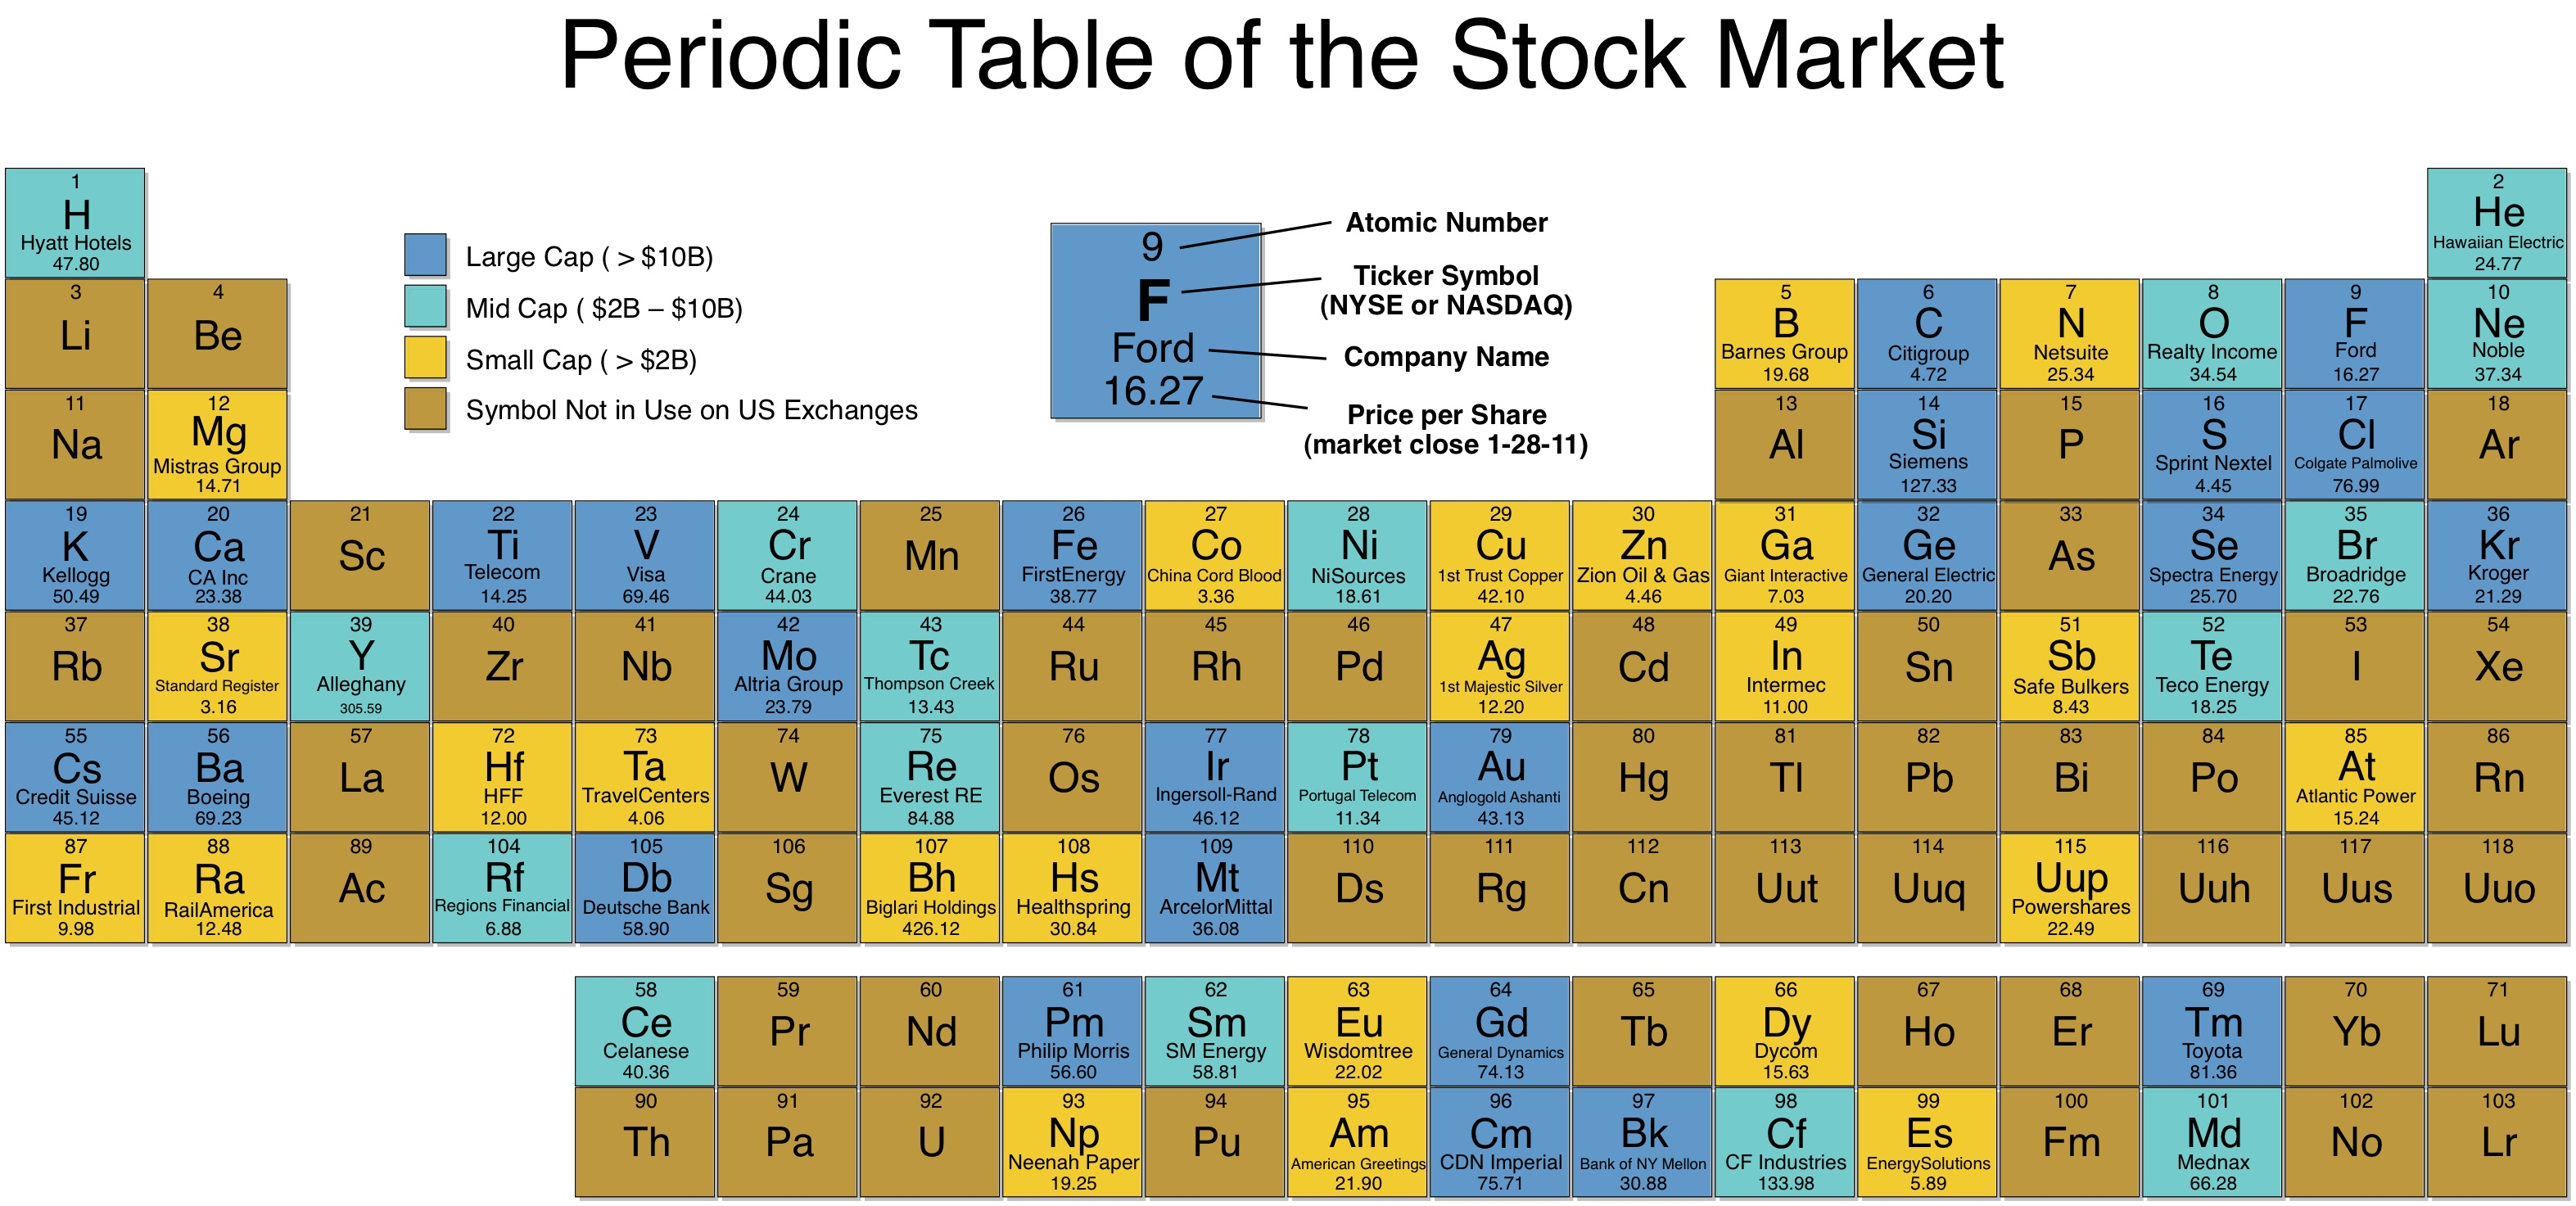 Periodic table of the stock market i can has science element symbols stock ticker symbols gamestrikefo Image collections